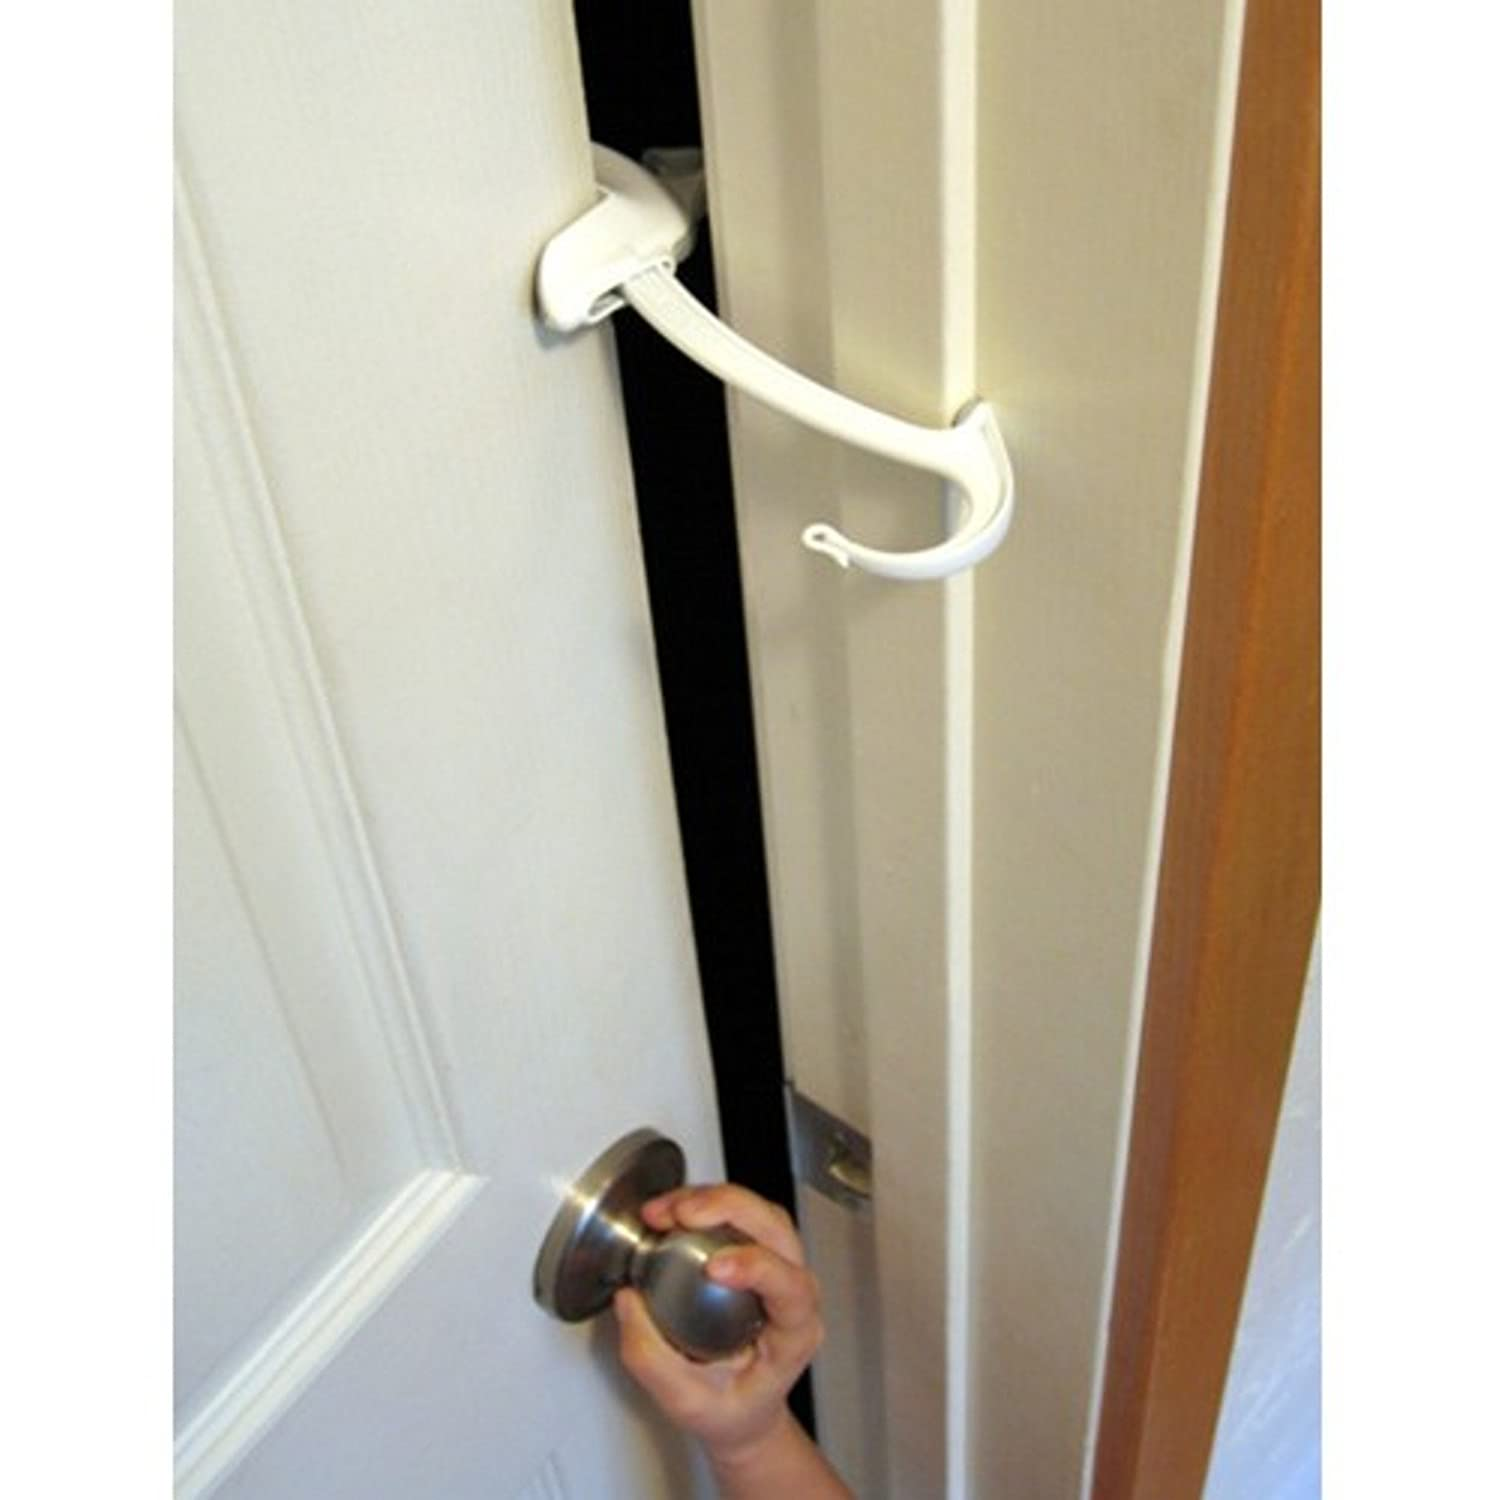 door locks. amazoncom door monkey lock and pinch guard childrens home safety products baby locks